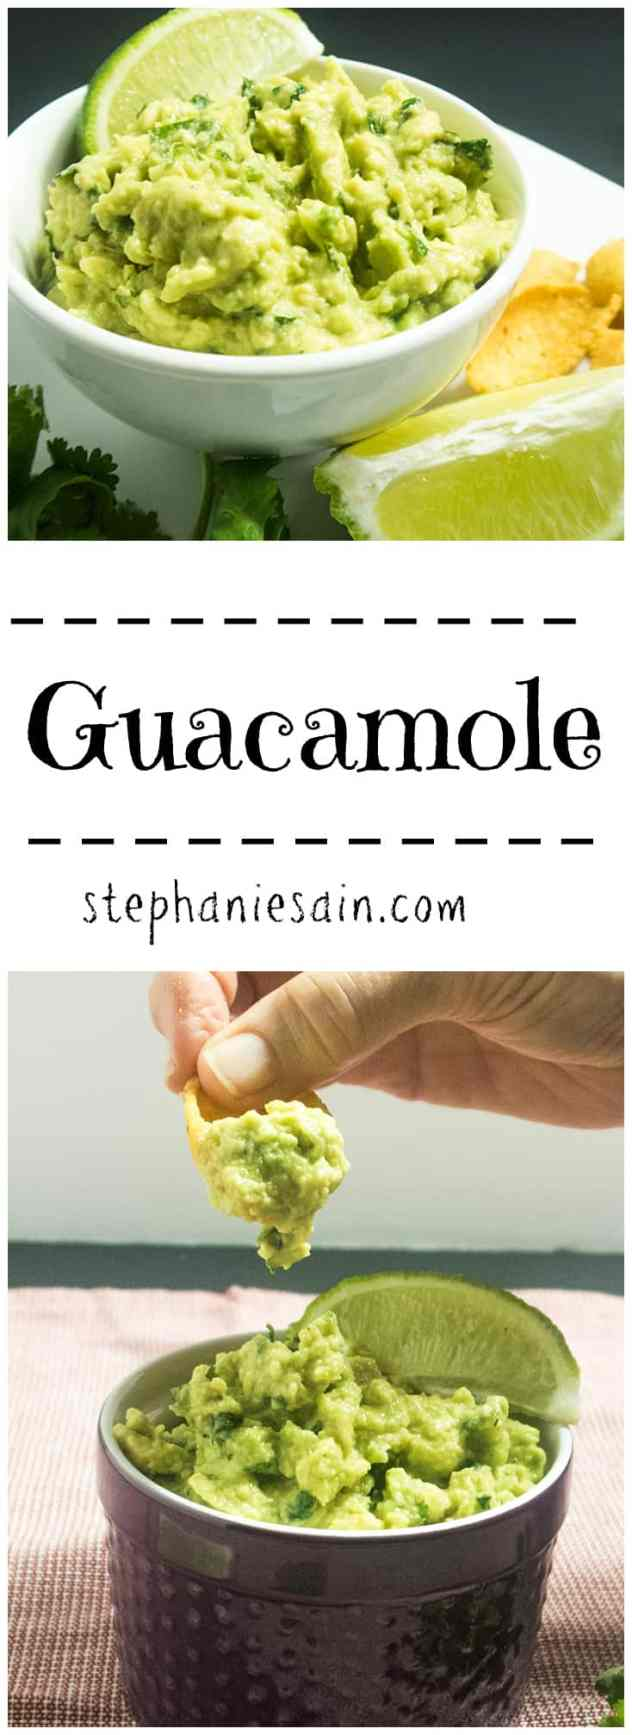 Guacamole is an easy to prepare snack or appetizer. Perfect with chips or crackers and is loaded with healthy fats. Vegetarian, Vegan, & Gluten Free.